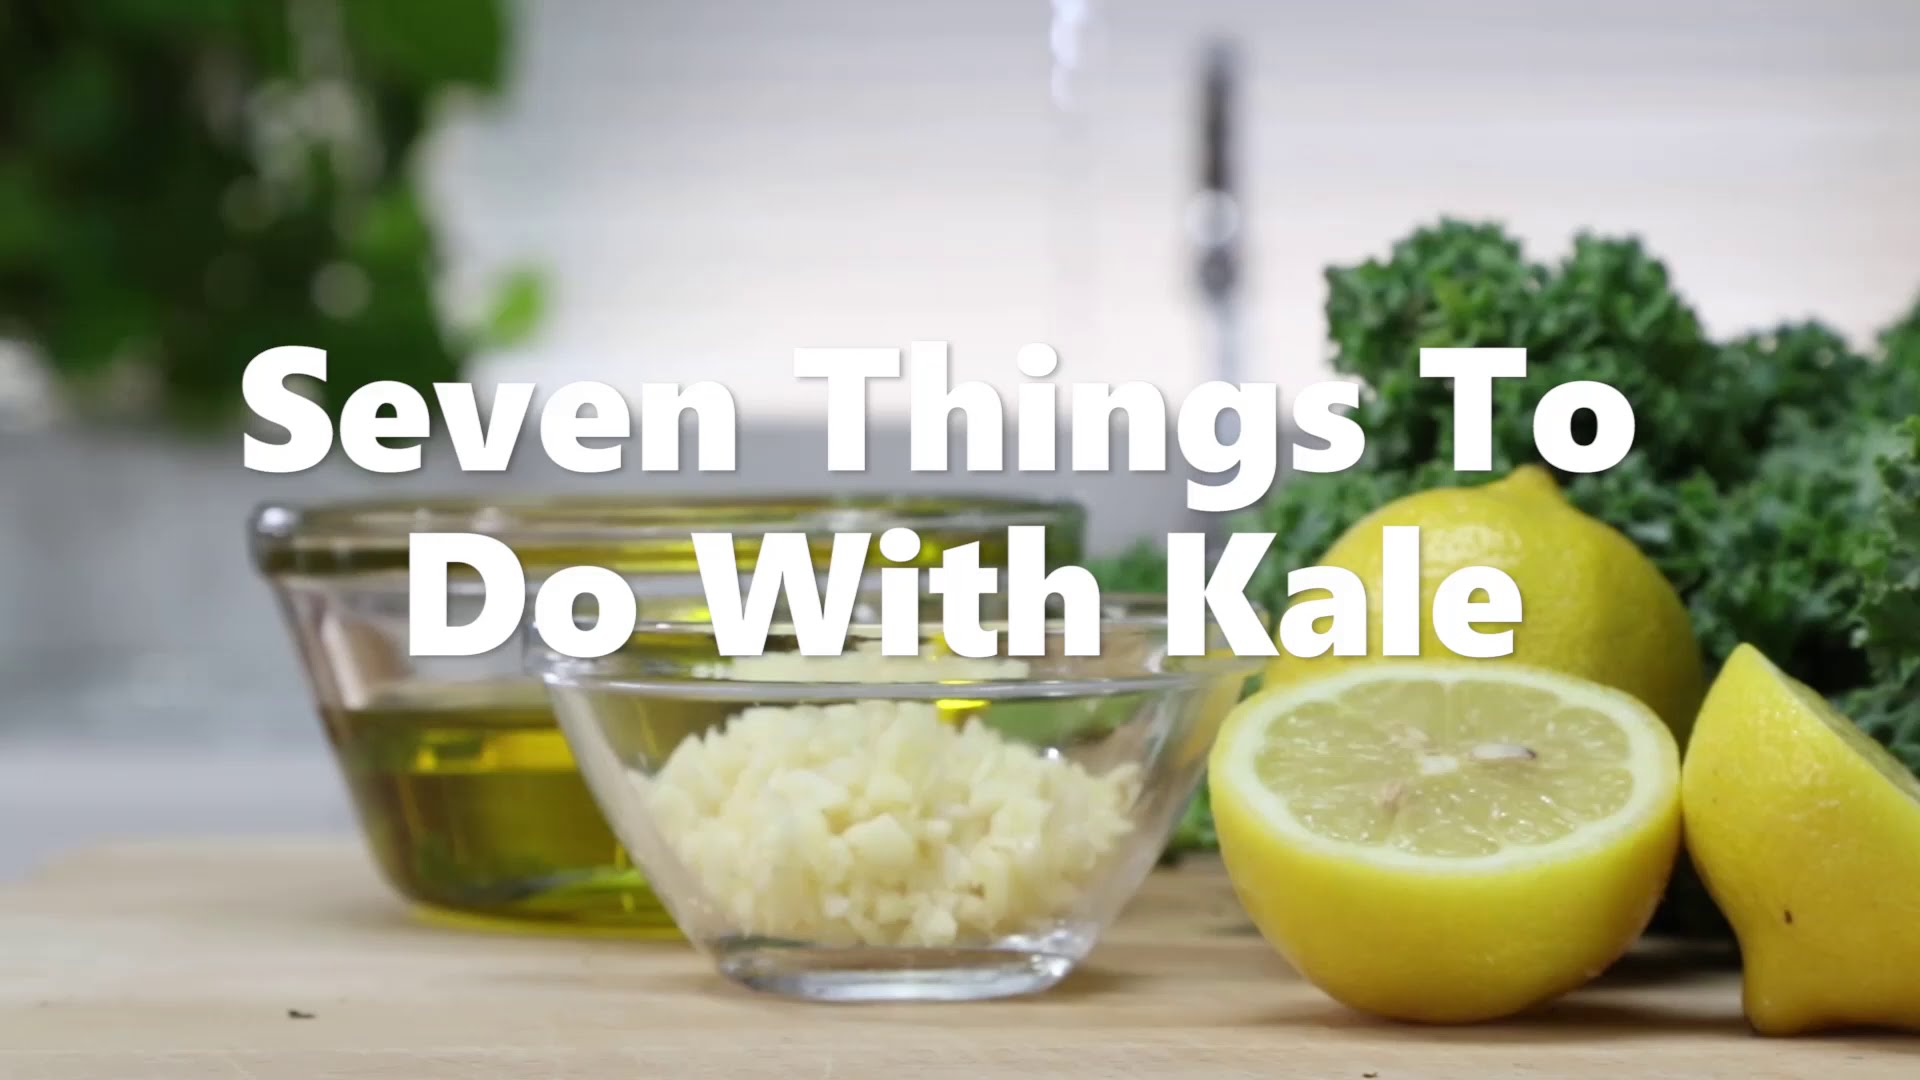 Captura de pantalla del video 7 Things to do with Kale